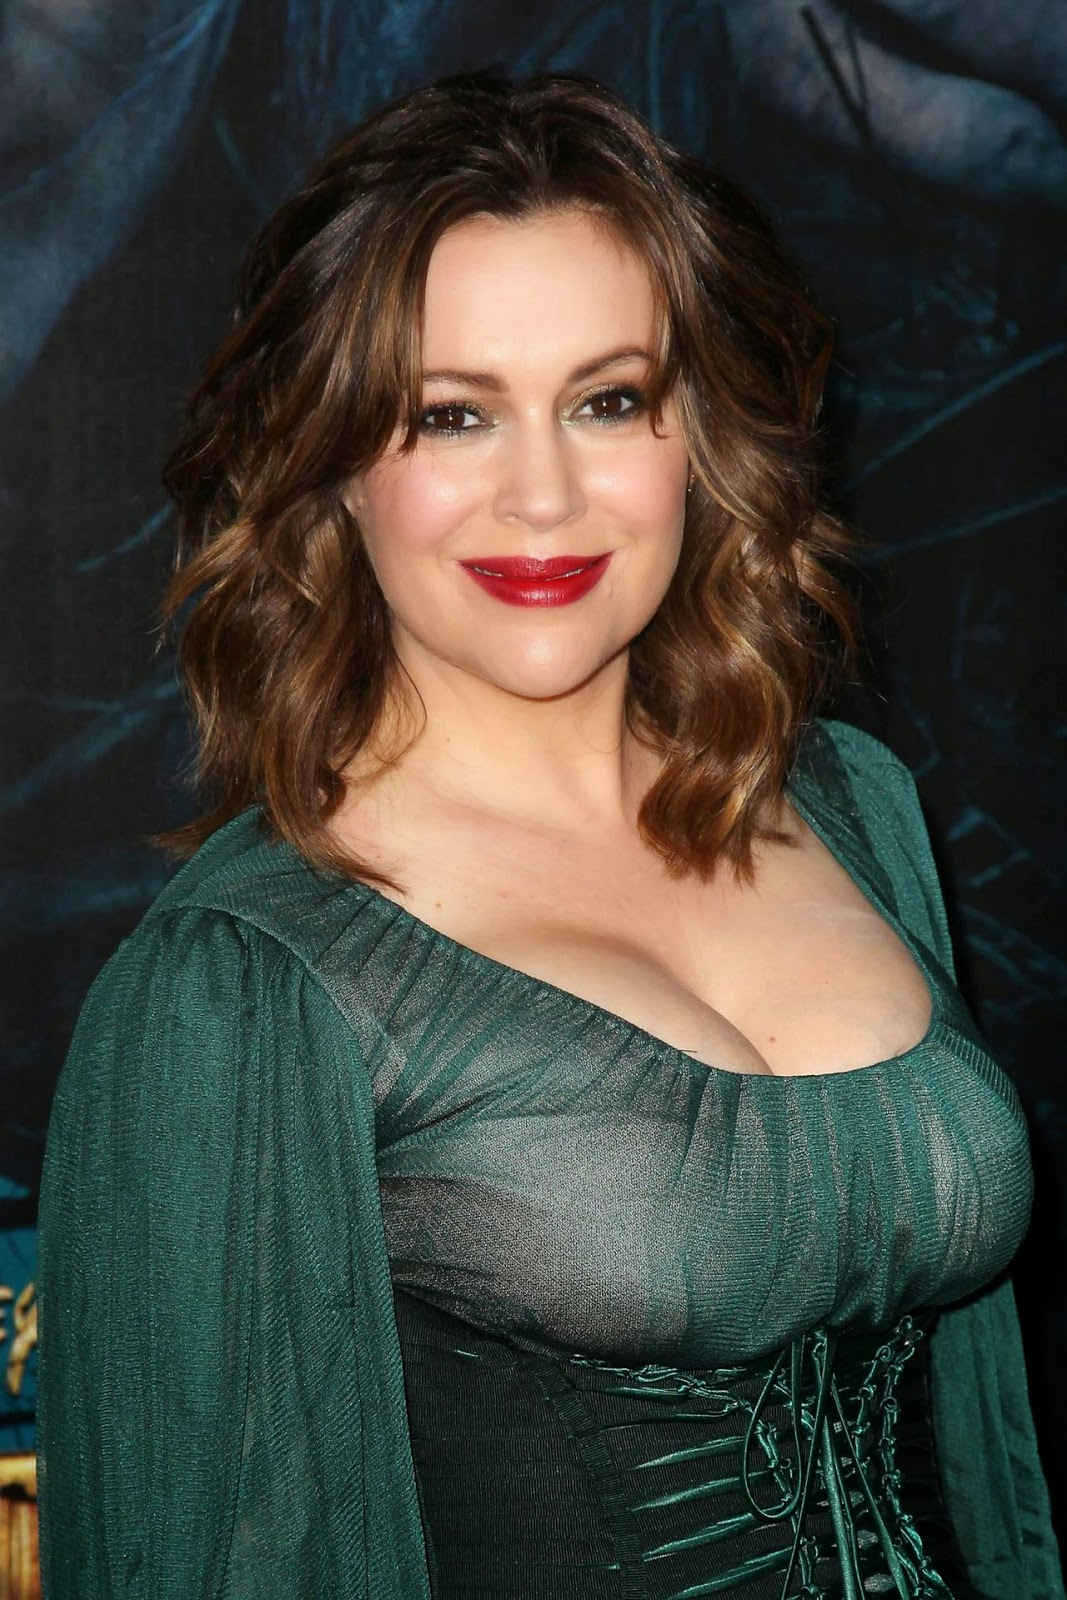 Alyssa Milano flaunts cleavage at the 'Into the Woods' NYC Premiere